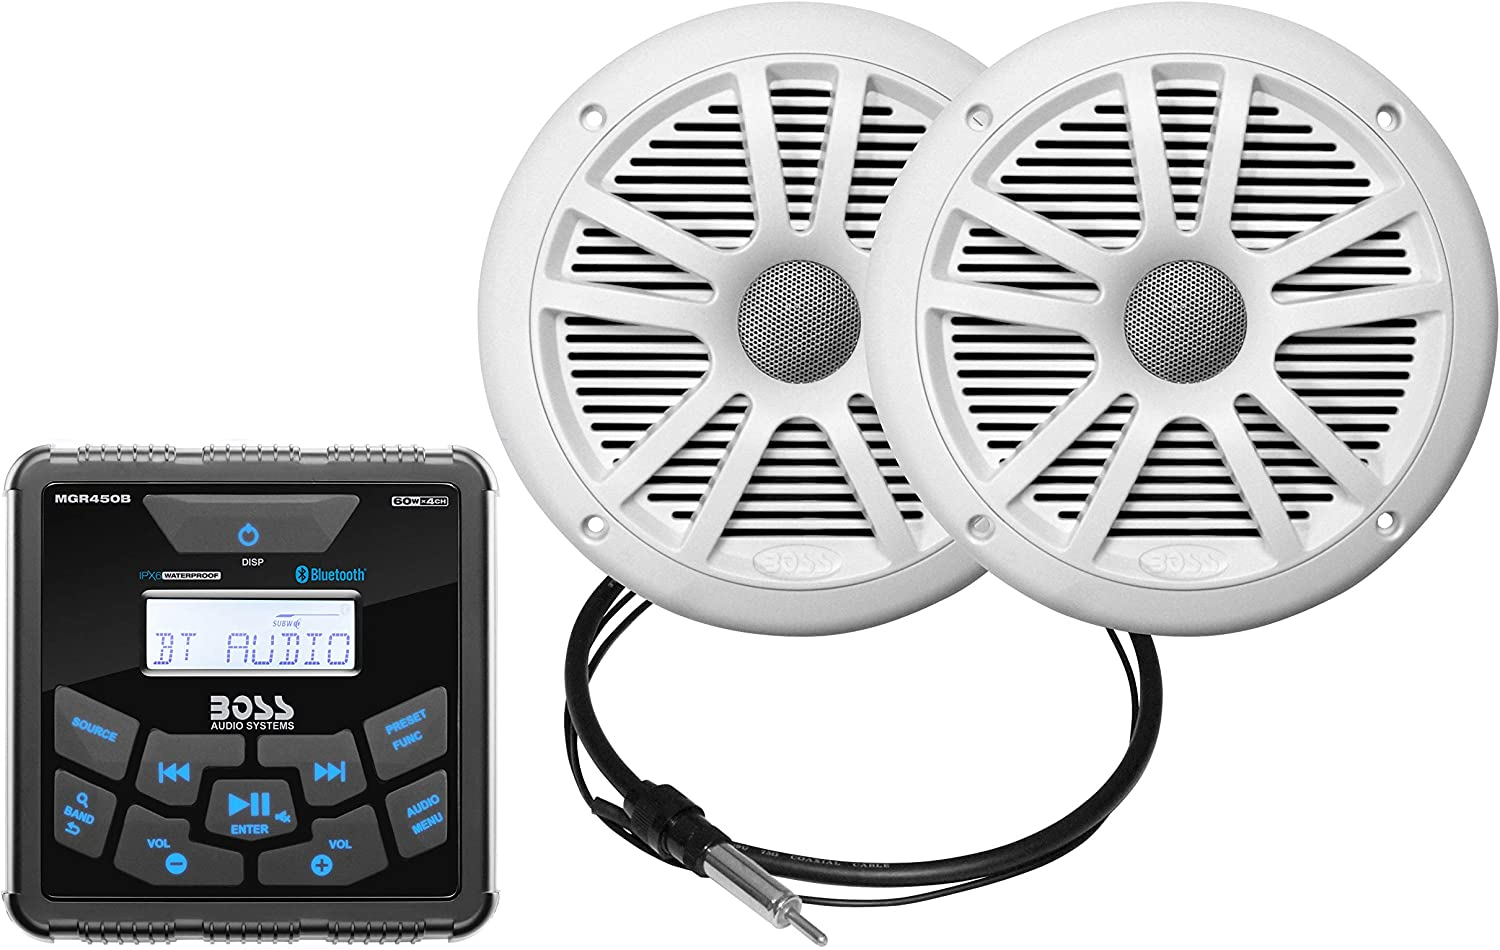 AM FM BOSS Audio Systems MCKGB450W.6 Weatherproof Marine Gauge Receiver and Speaker Package Bluetooth Audio No CD Player 6.5 Inch Speakers IPX6 Receiver NOAA Weather Band Tuner USB MP3